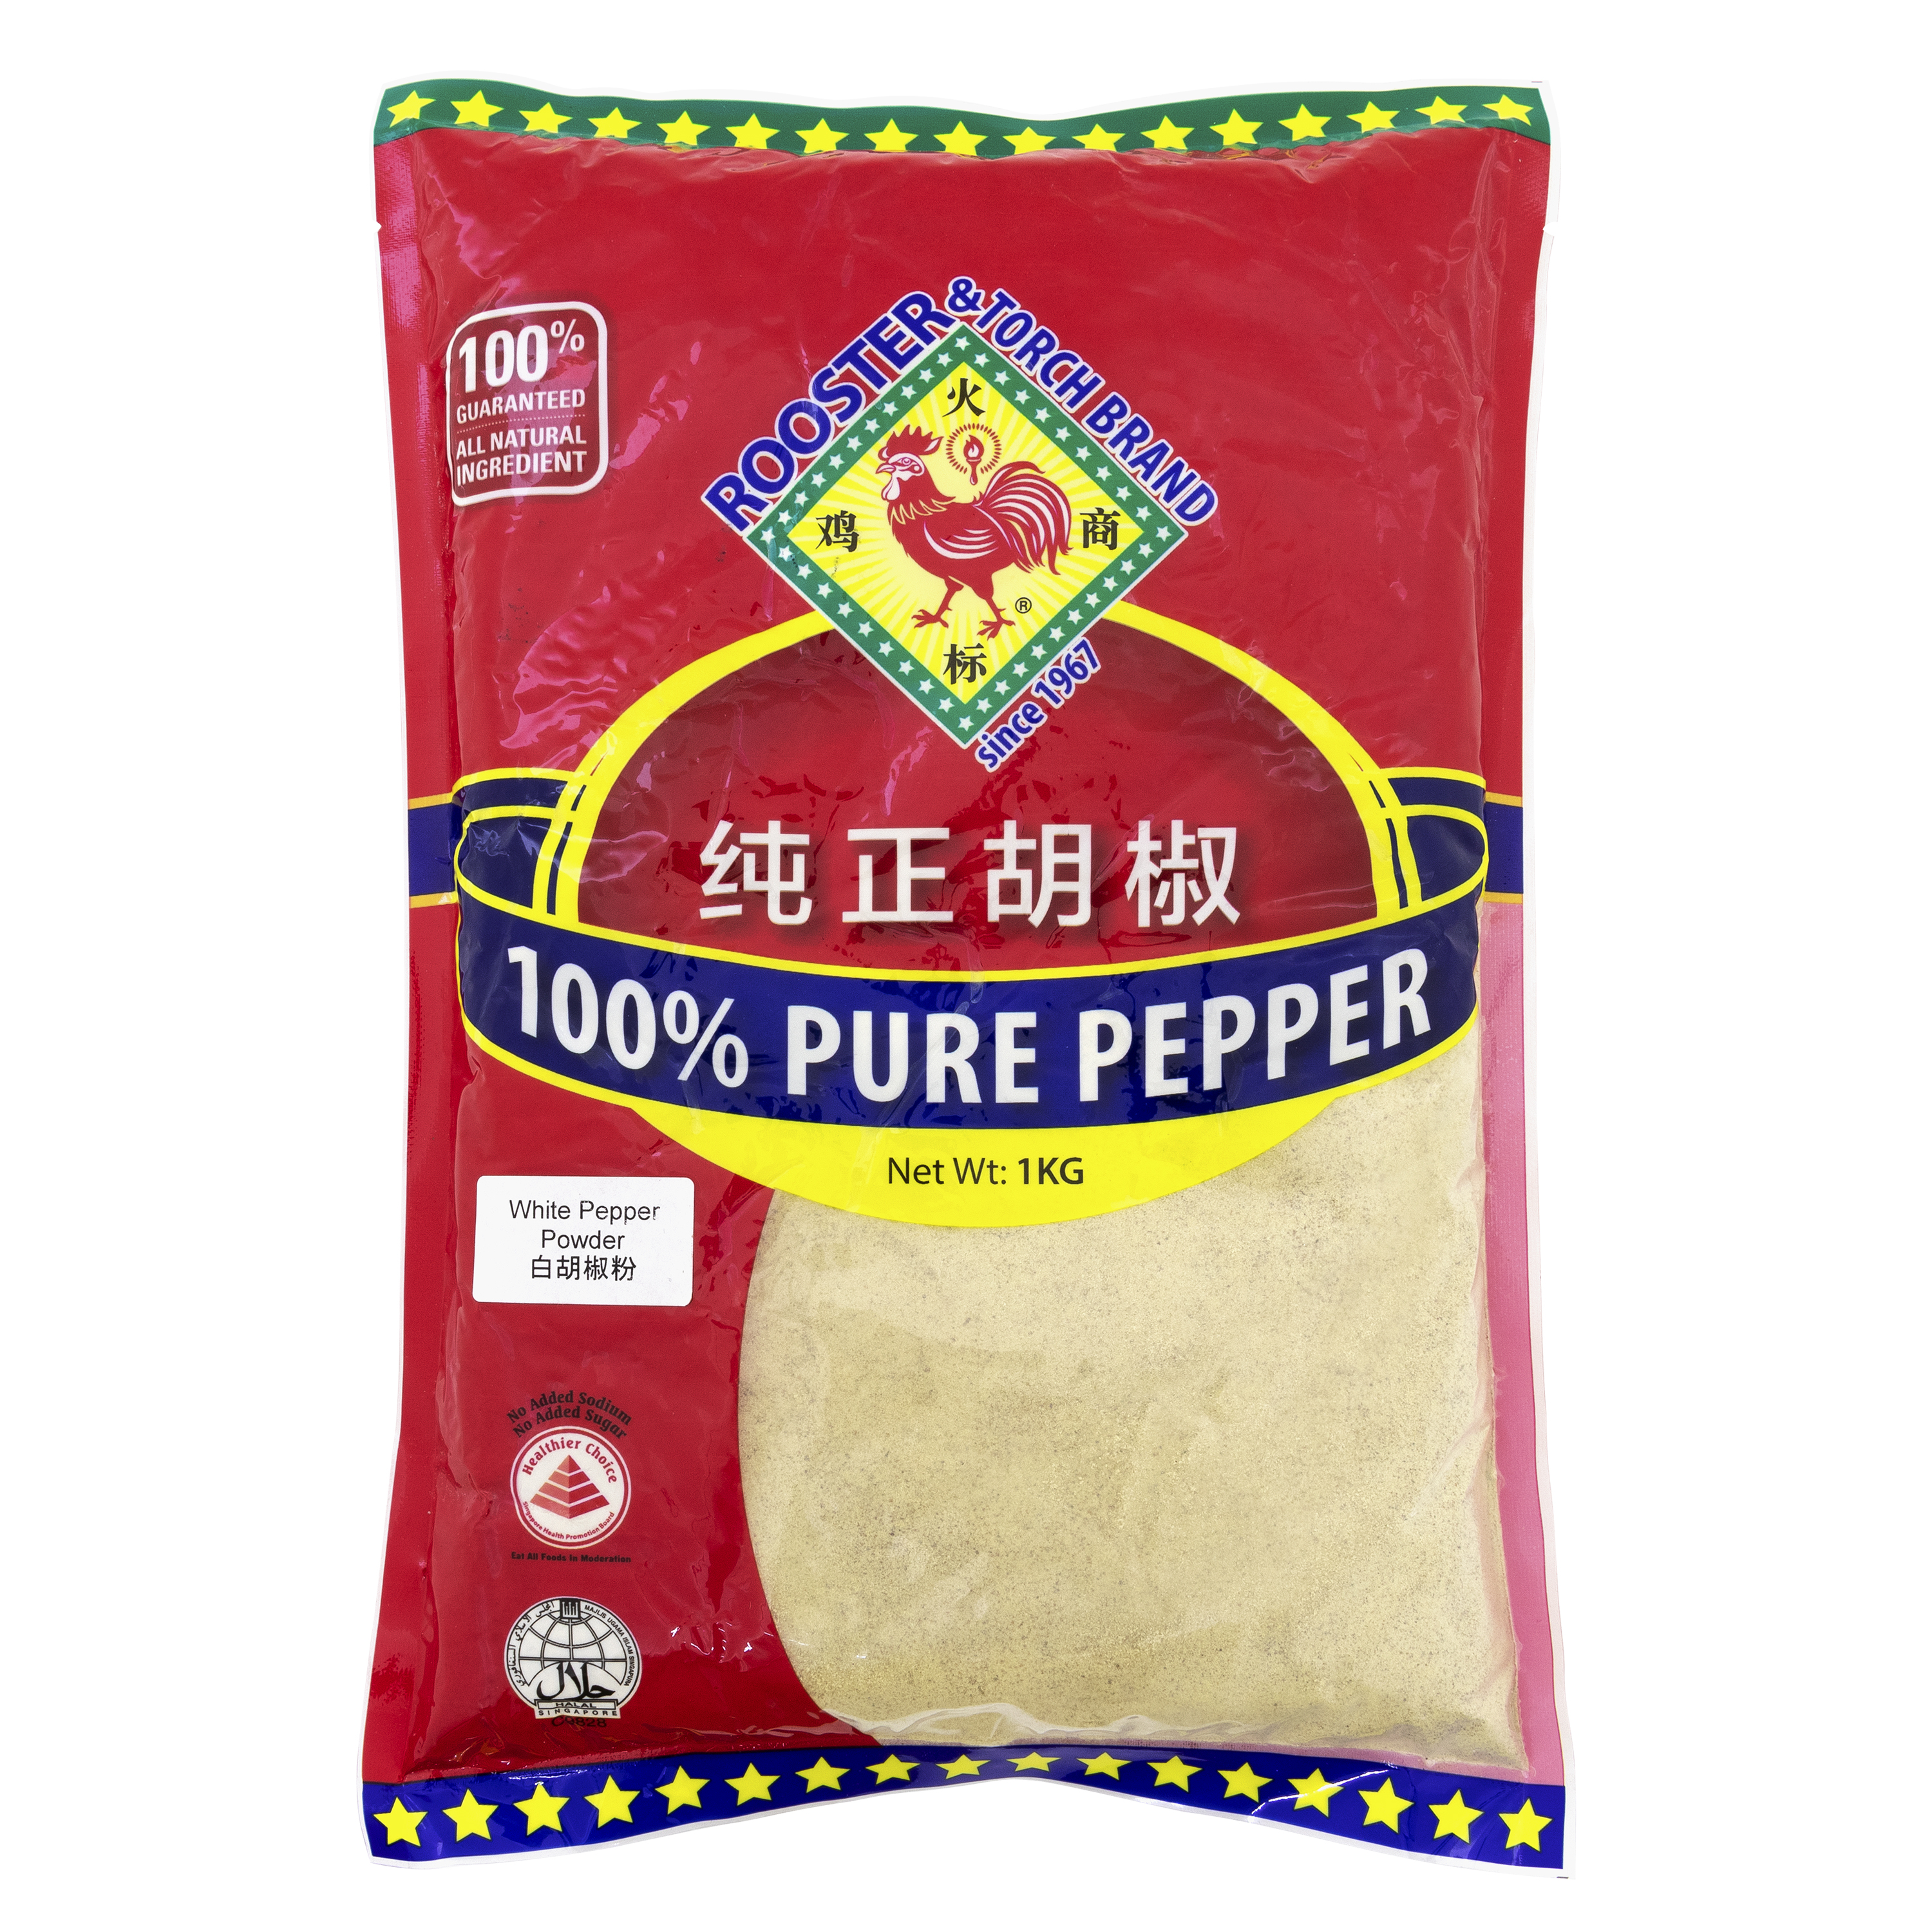 Rooster & Torch White Pepper Powder 1kg